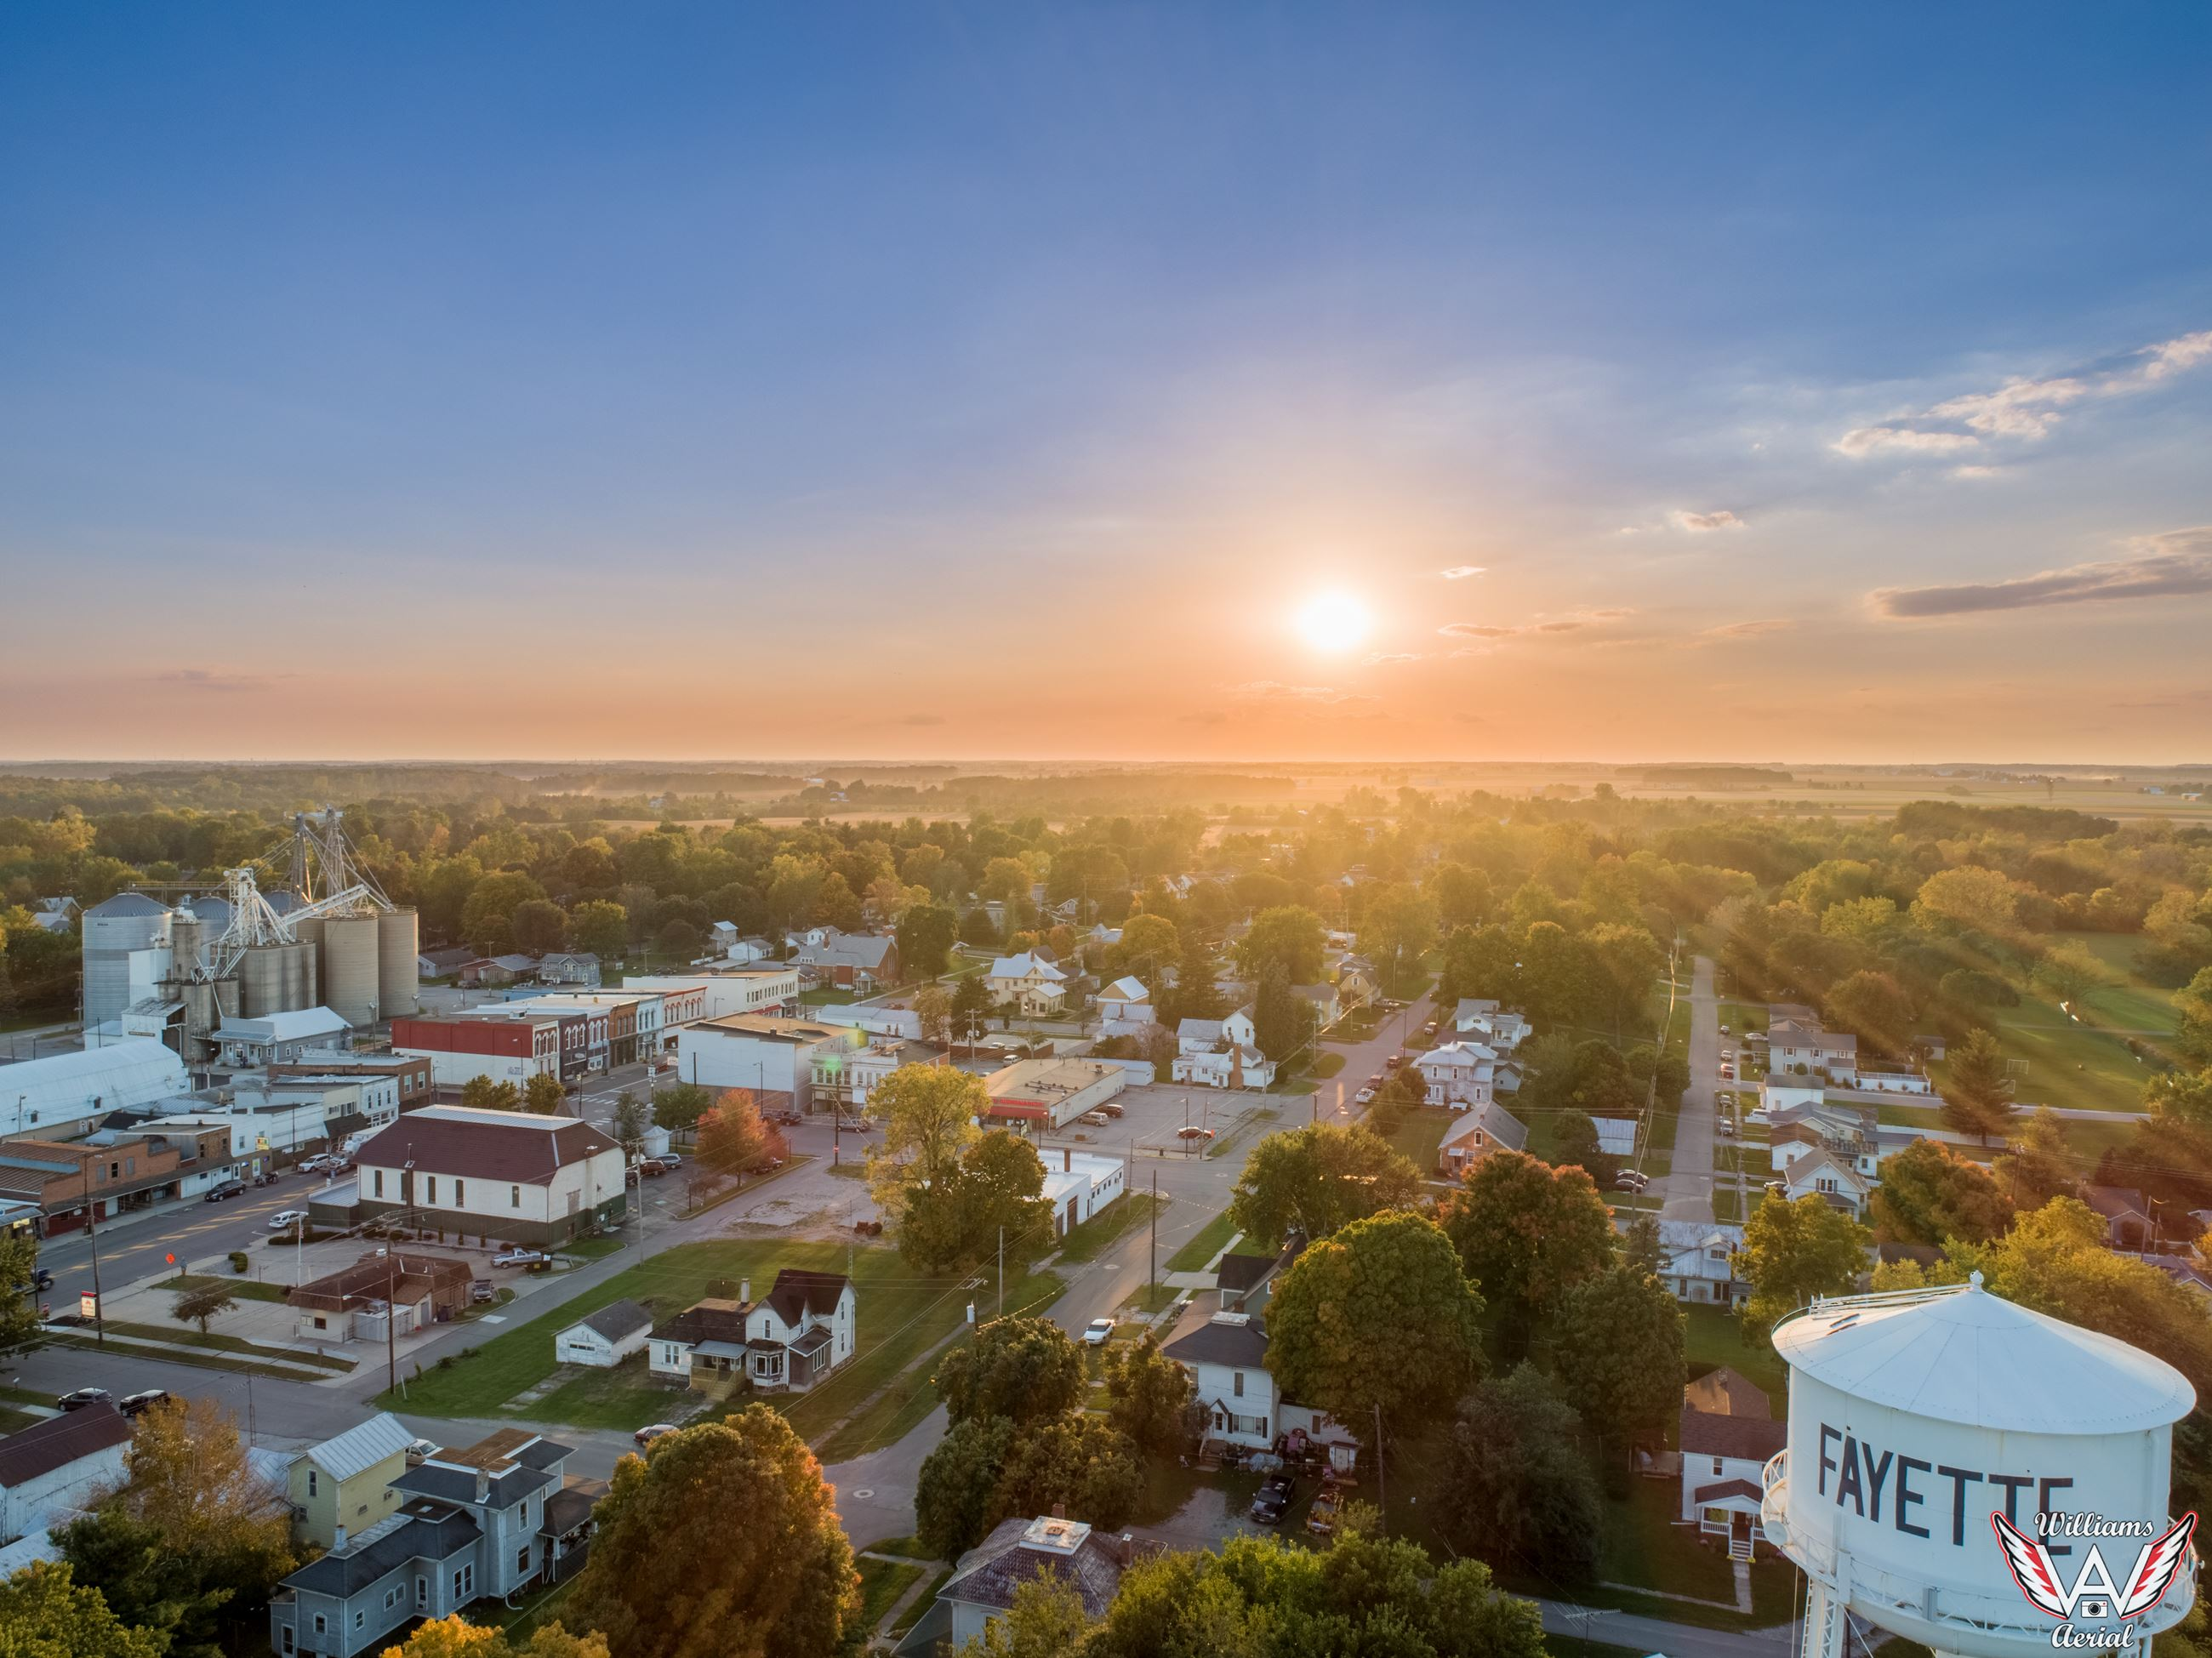 Drone Photo of Fayette at Sunset October 9, 2018